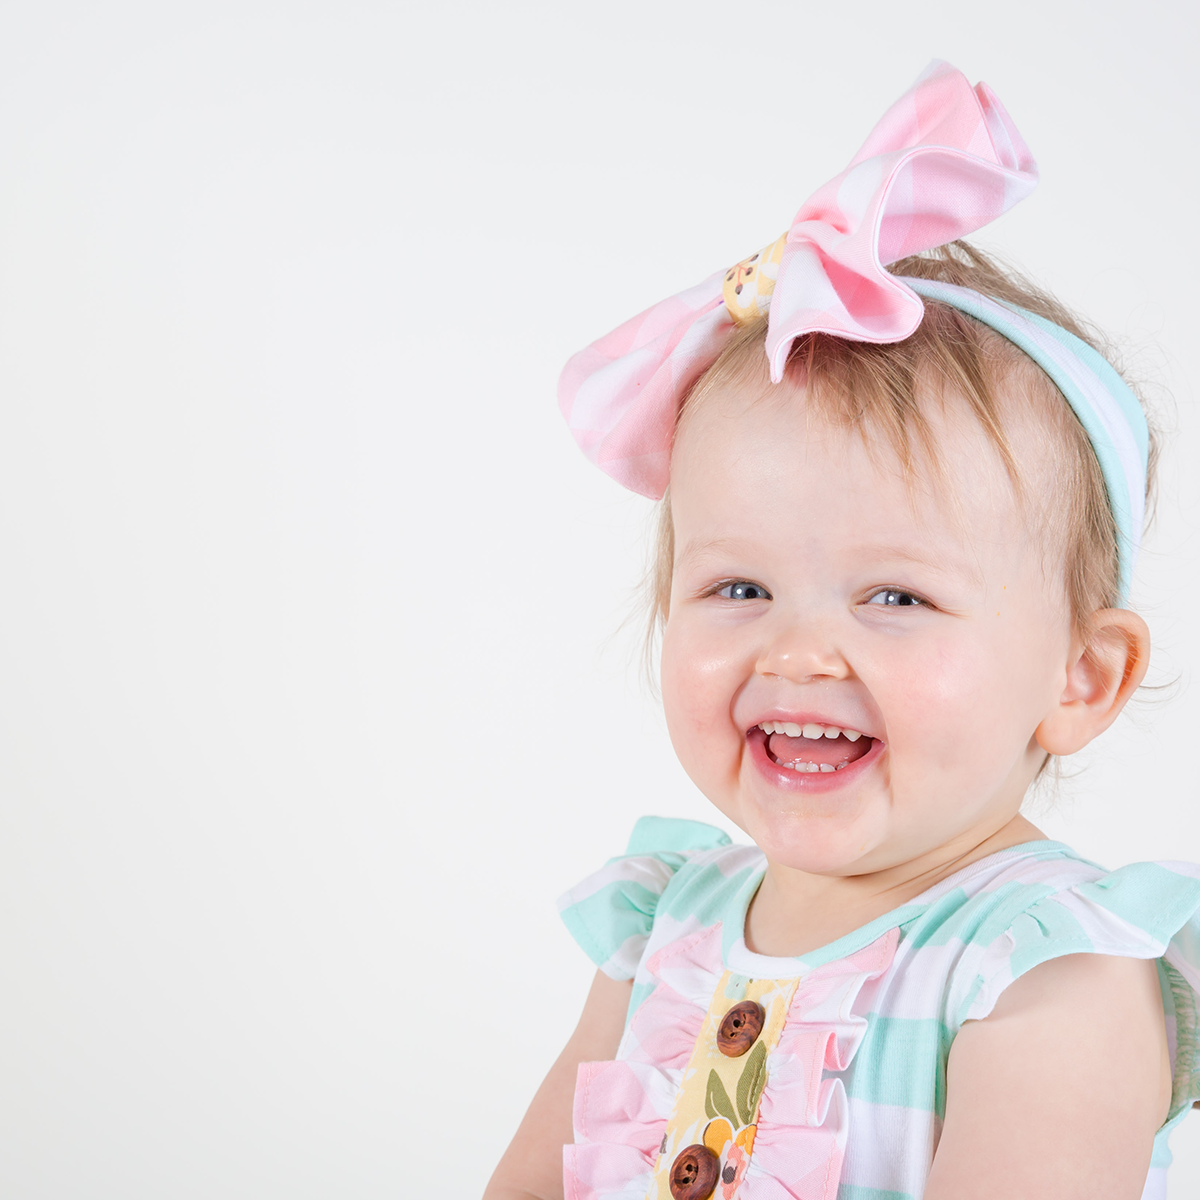 Daycare and Preschool Photographer in Birmingham, Alabama